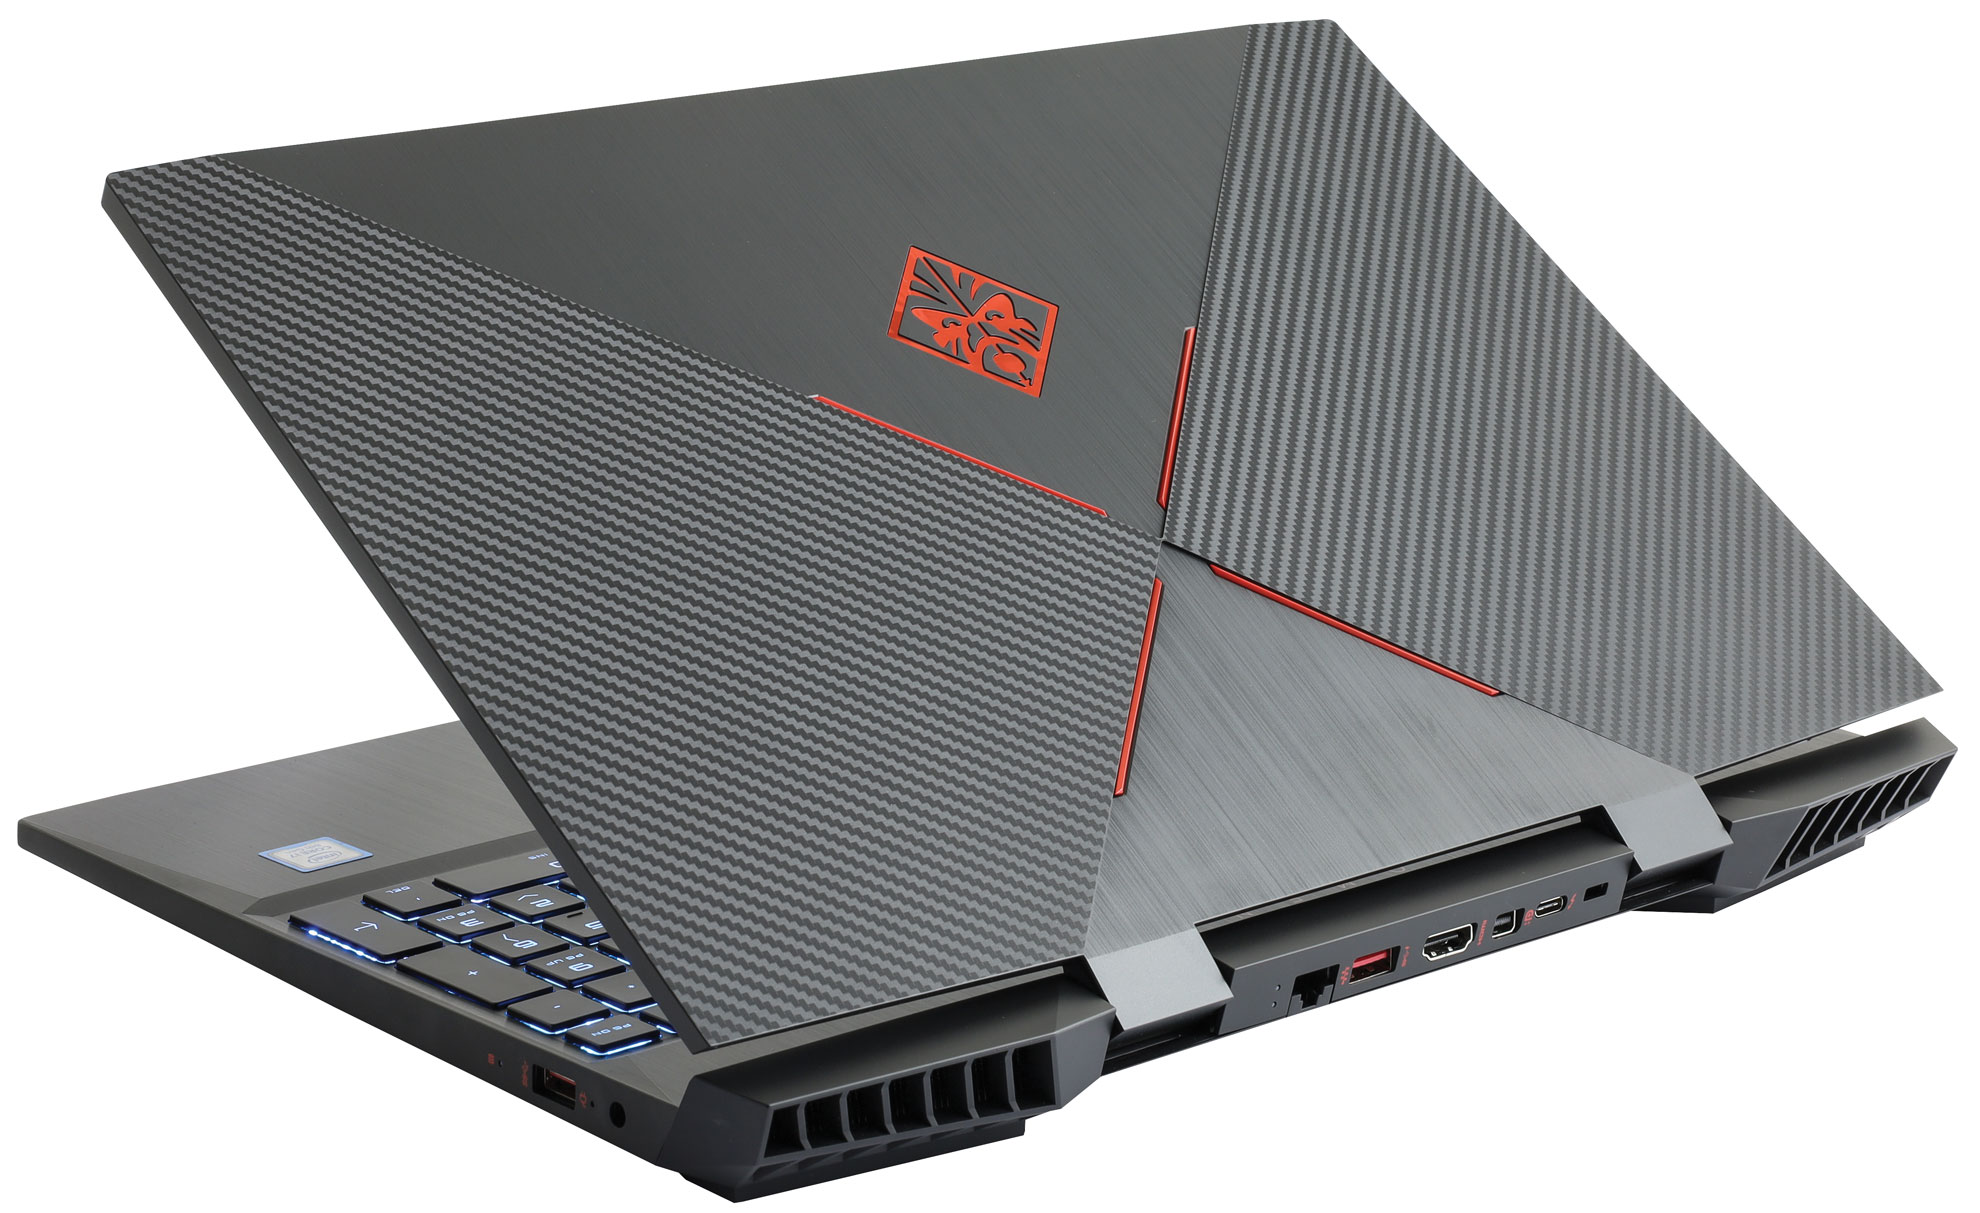 HP Omen RTX laptop body slika 1